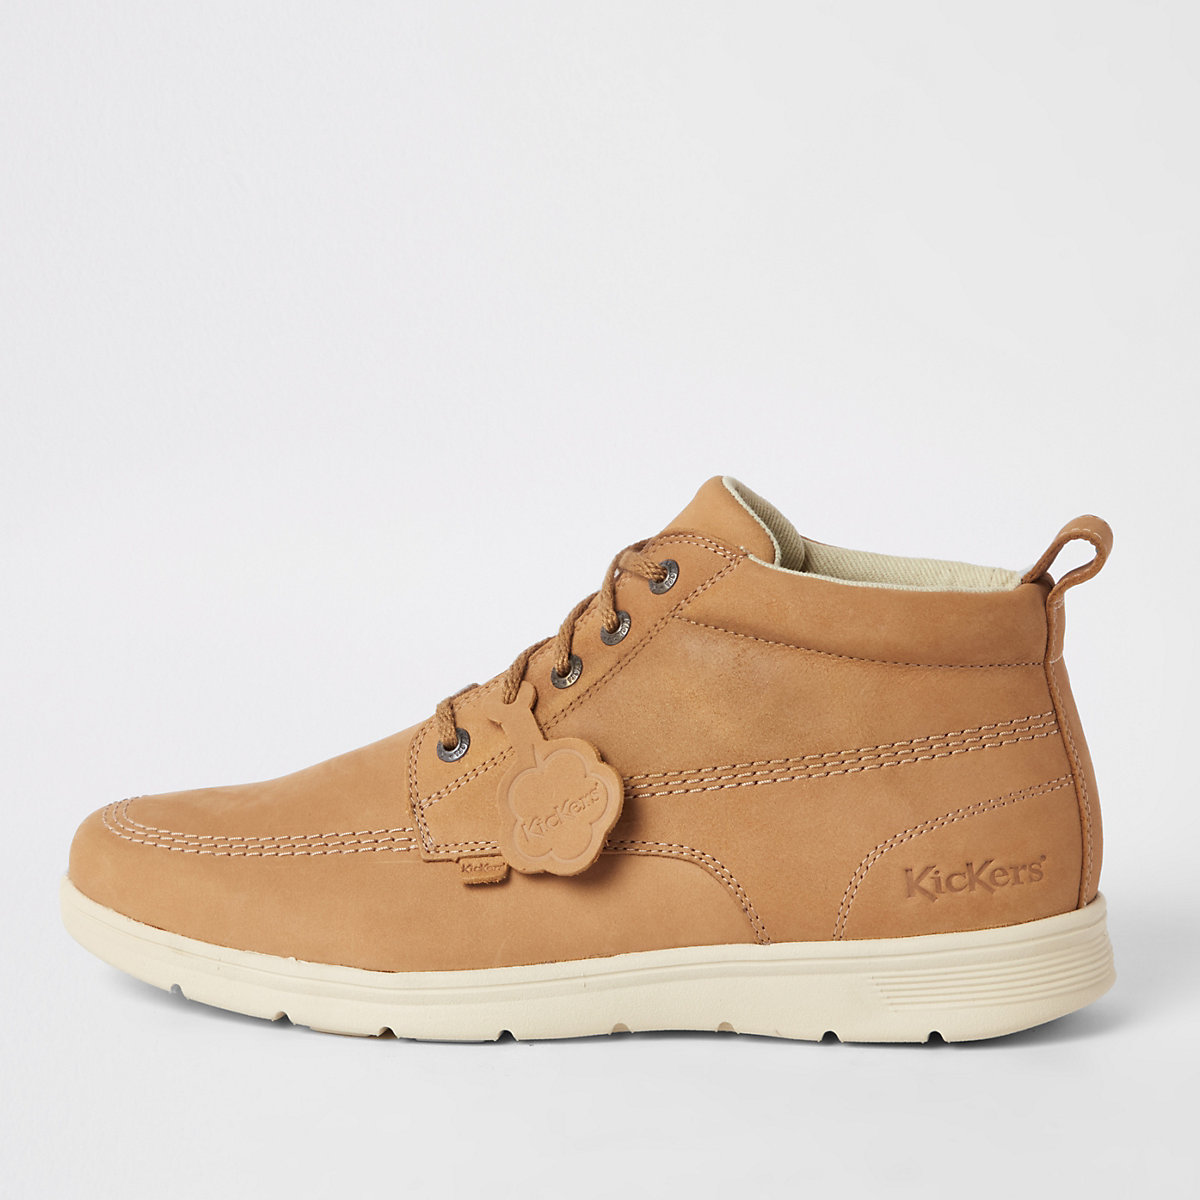 Kickers Kelland brown leather lace-up boots